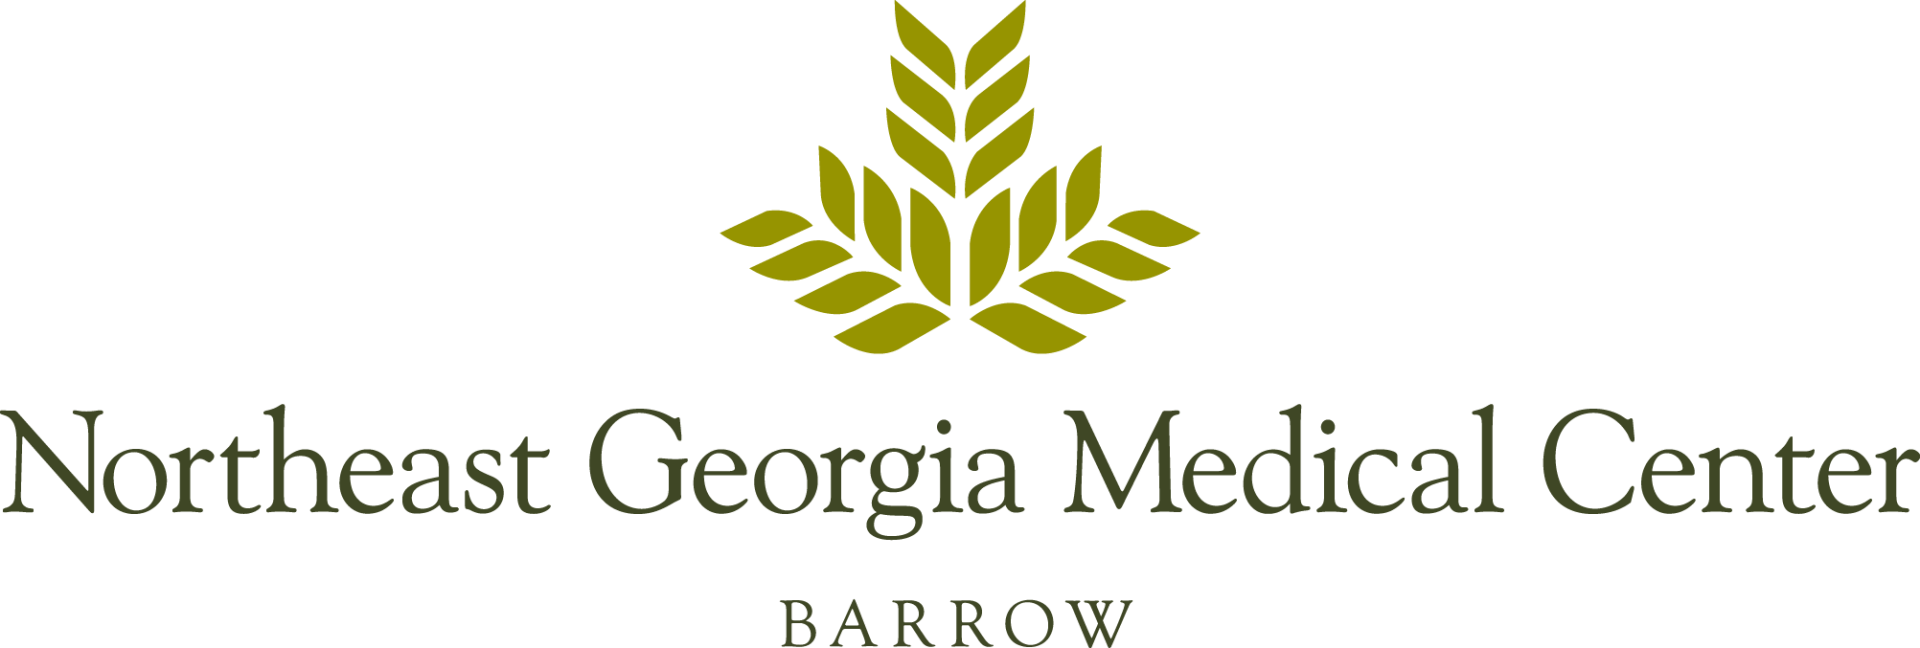 NGMC-logo-barrow-color-outlined